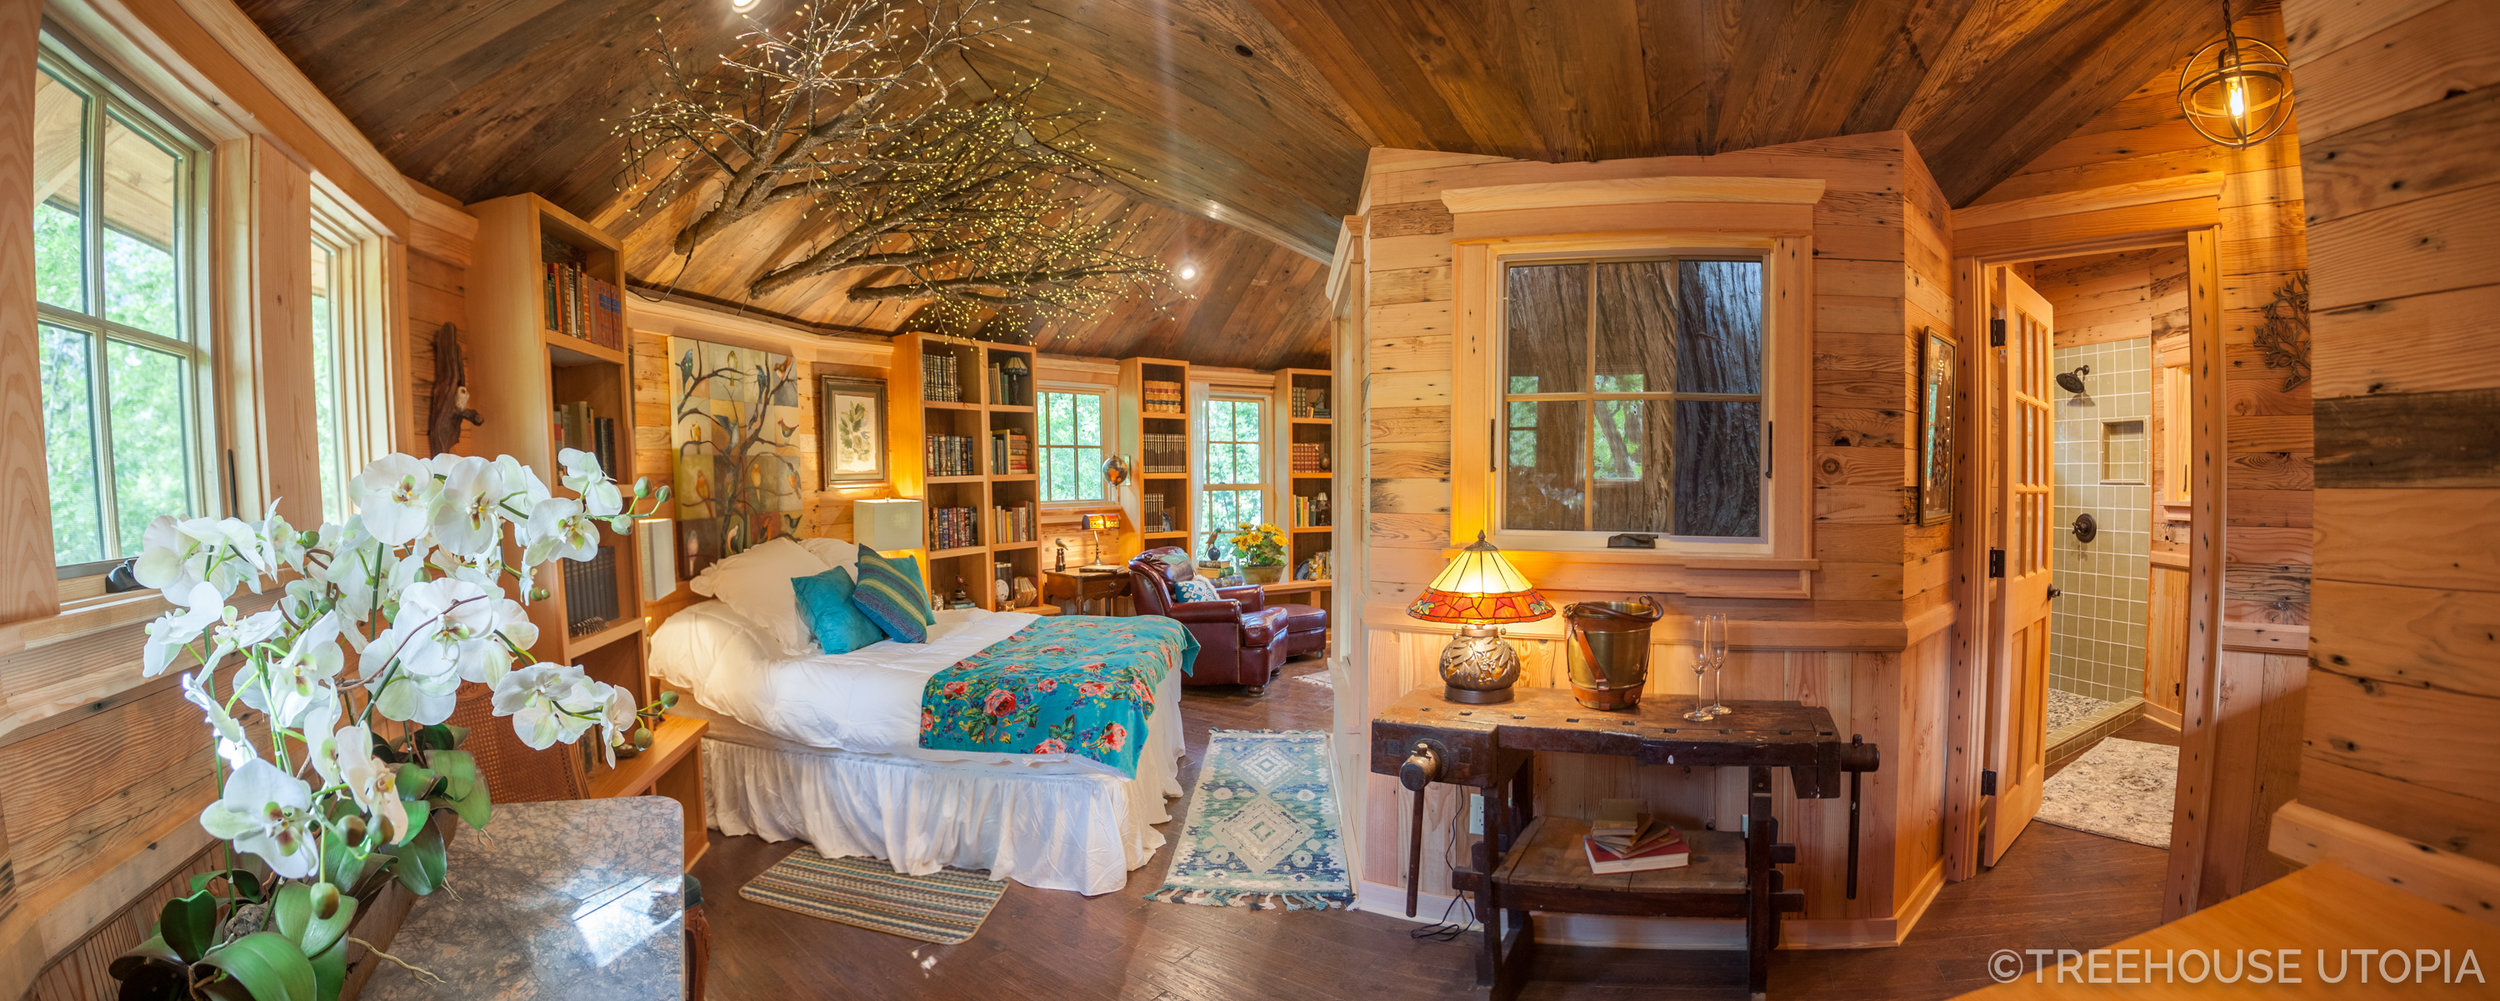 Treehouse Utopia Now Open For Reservations Nelson Treehouse